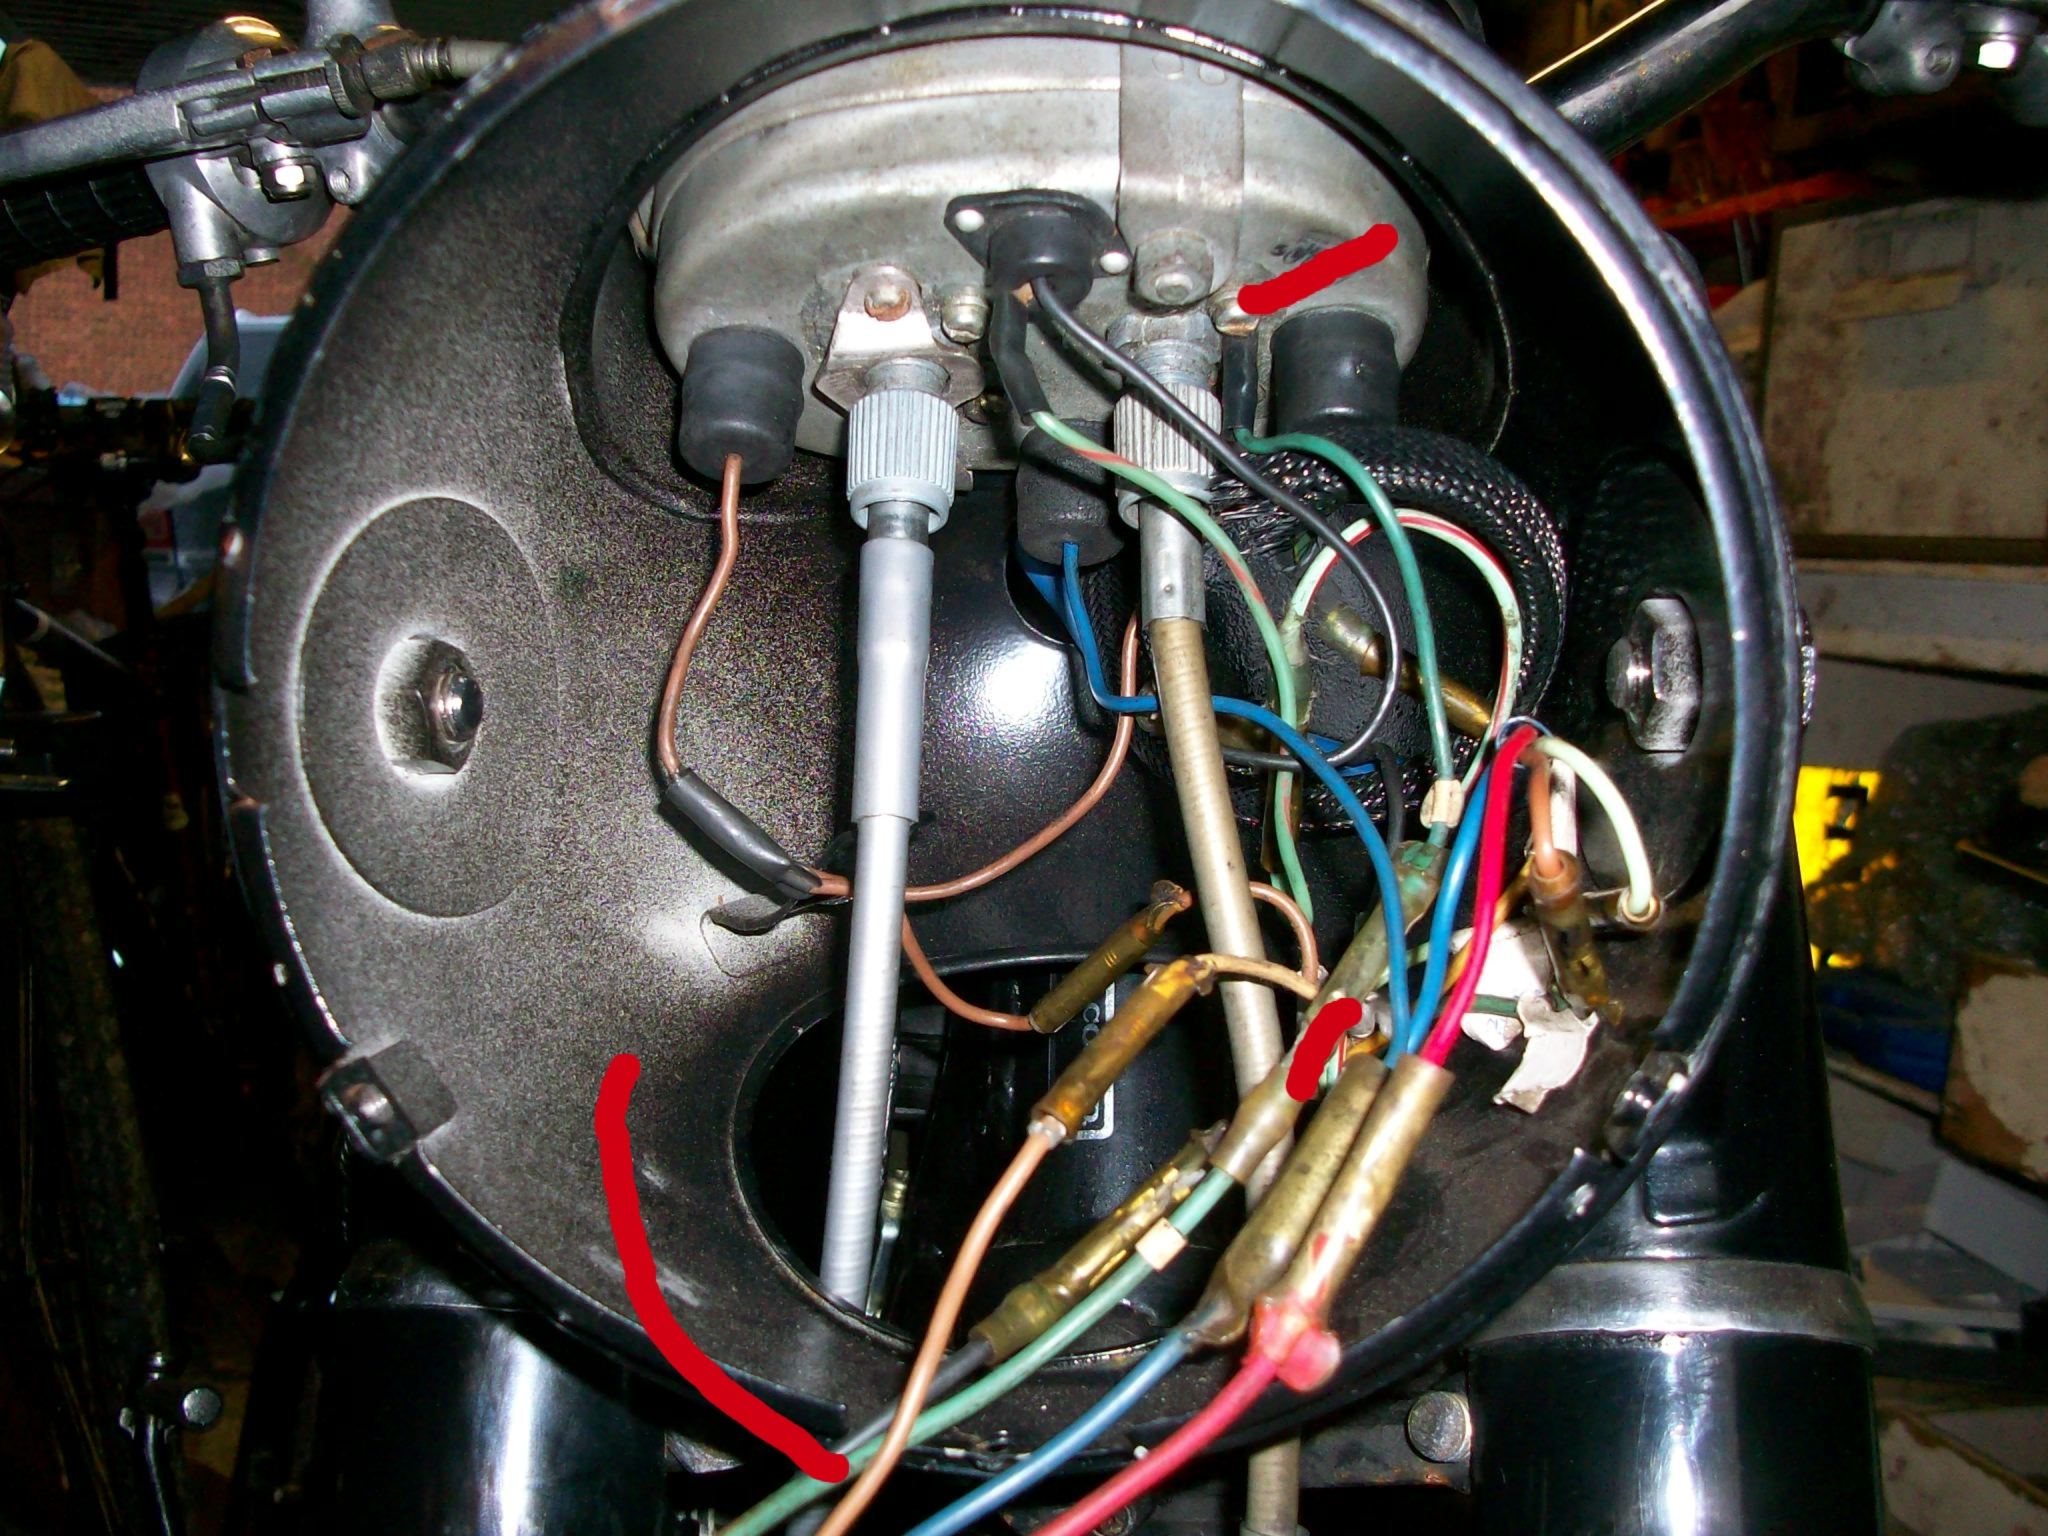 honda cb450 k0 headlight wiring question honda cb450 k0 headlight wiring question 100 1722 jpg